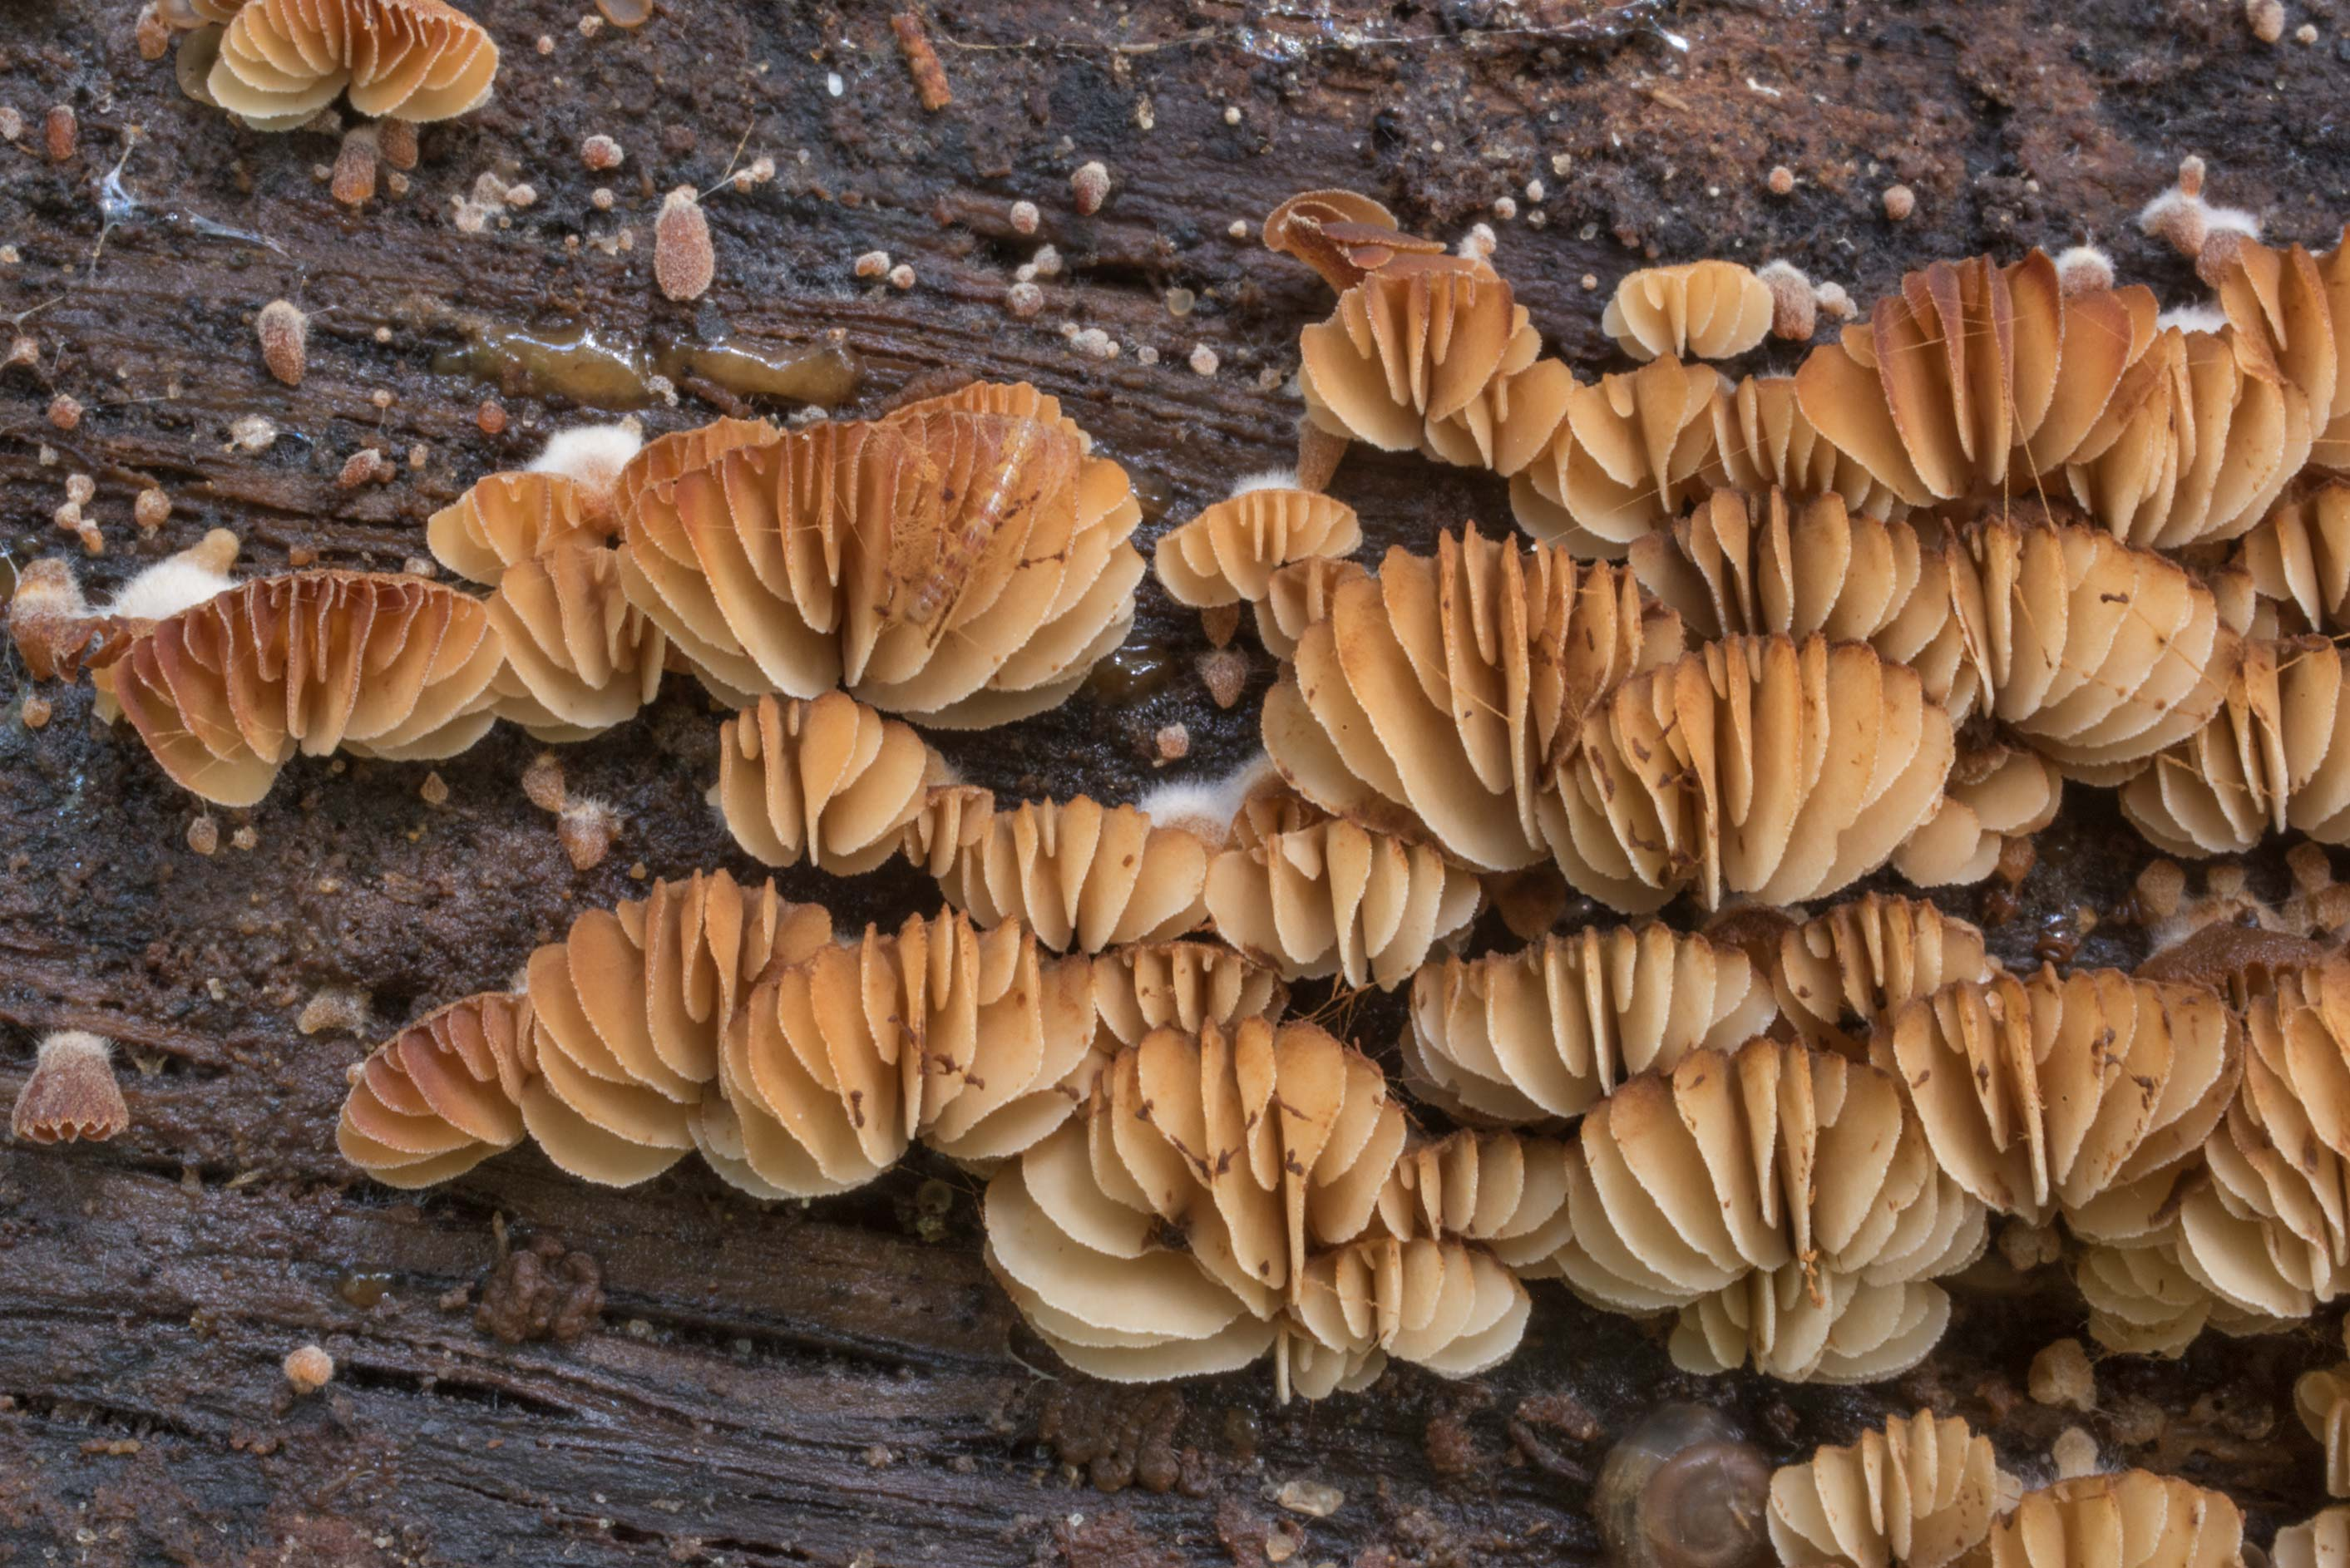 Close up of oysterling mushrooms Crepidotus on a...Nature Trail. College Station, Texas